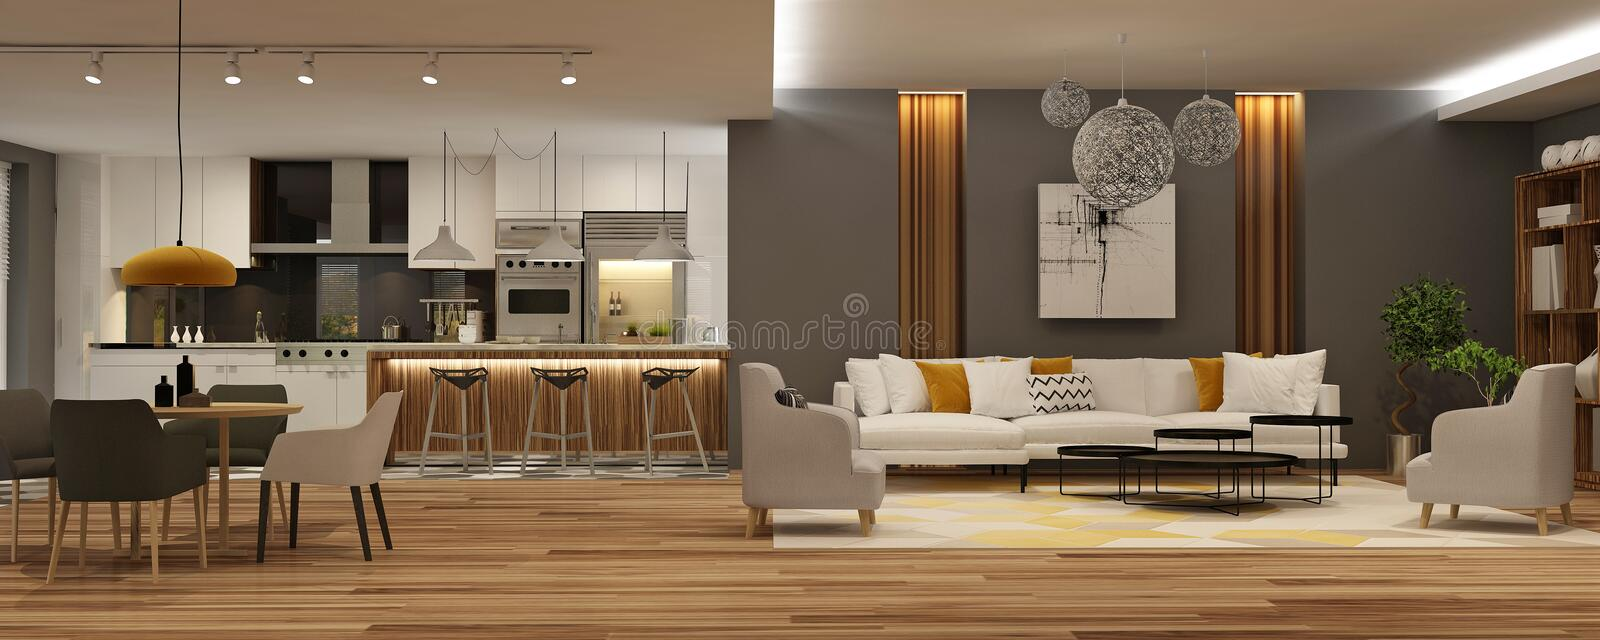 Modern interior of living room united with red kitchen in scandinavian style royalty free stock photos